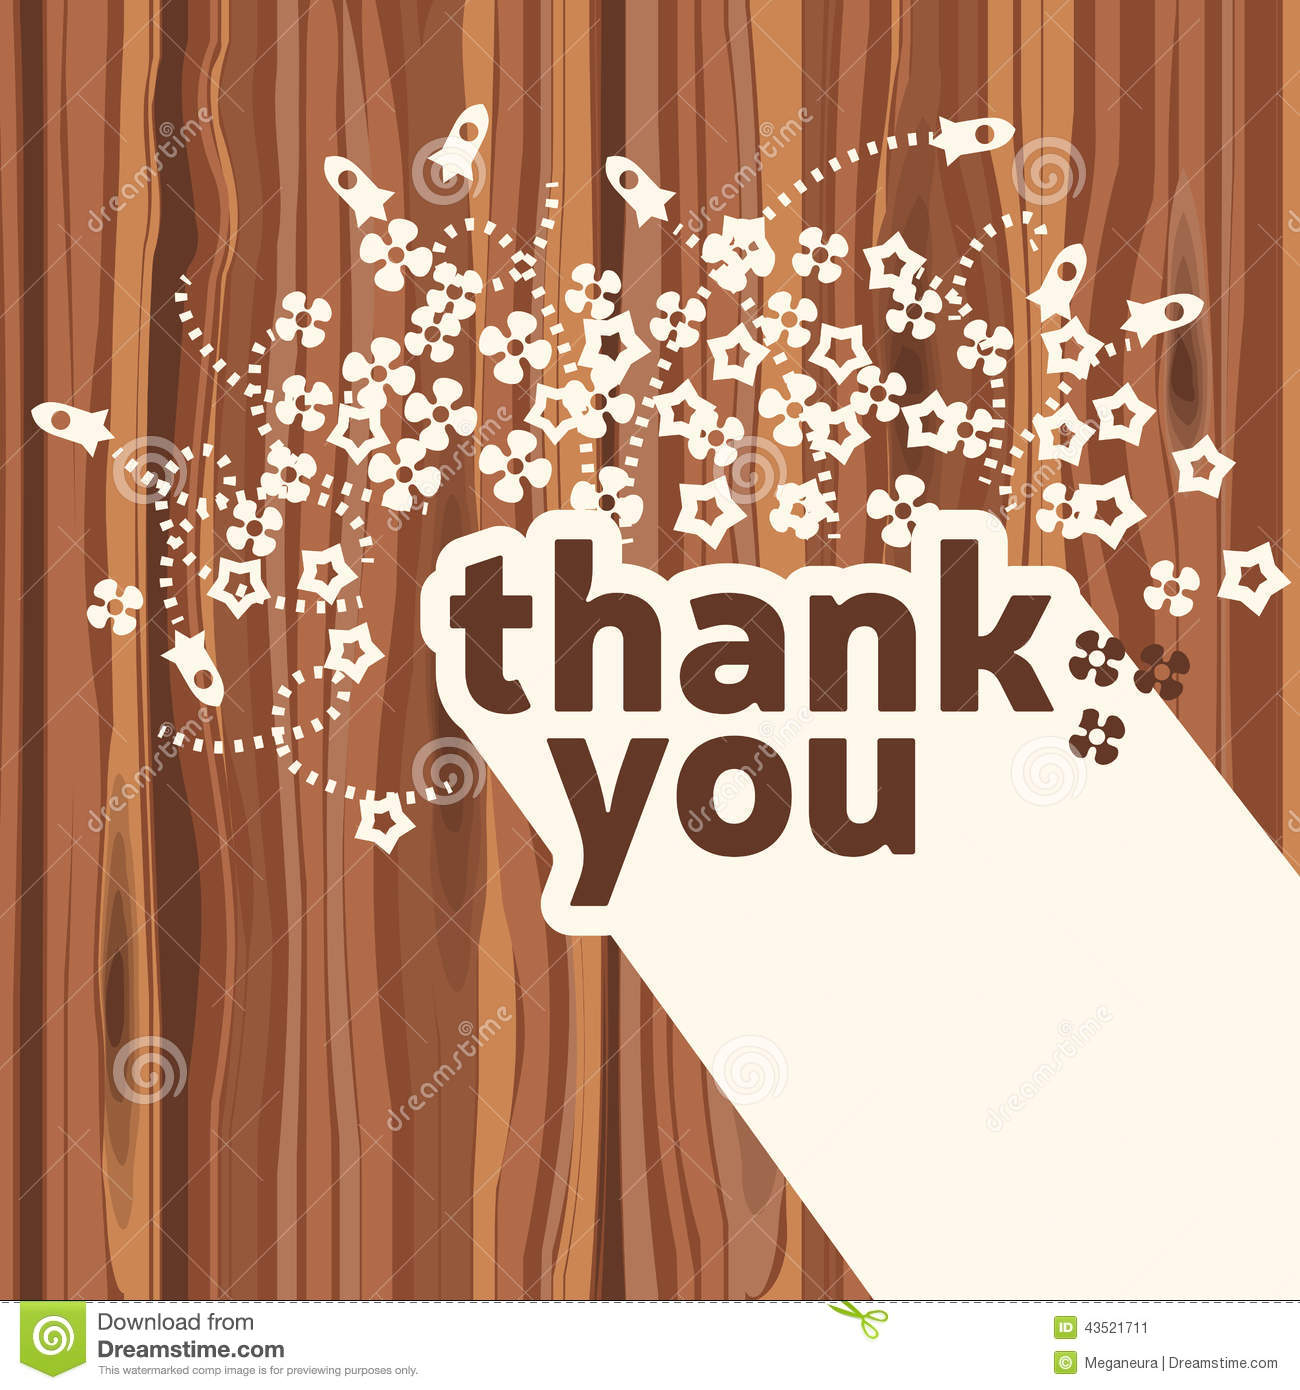 Thank you card design template stock vector illustration of thank you card design template spiritdancerdesigns Images